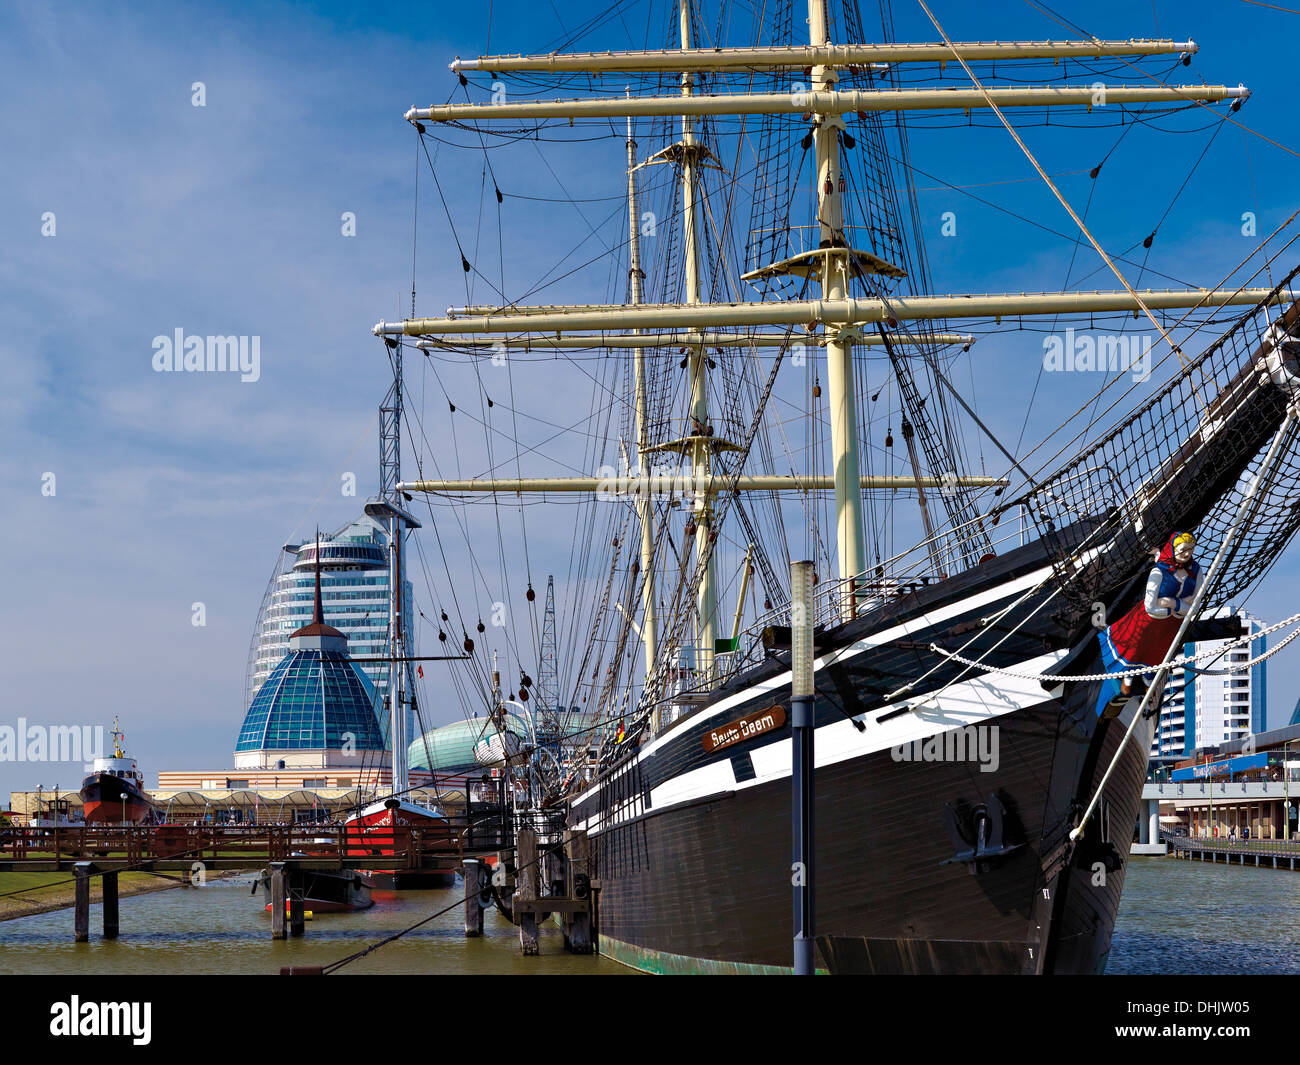 Harbour Museum, Atlantic Hotel Sail City and Mediterraneo, Bremerhaven, Bremen, Germany Stock Photo